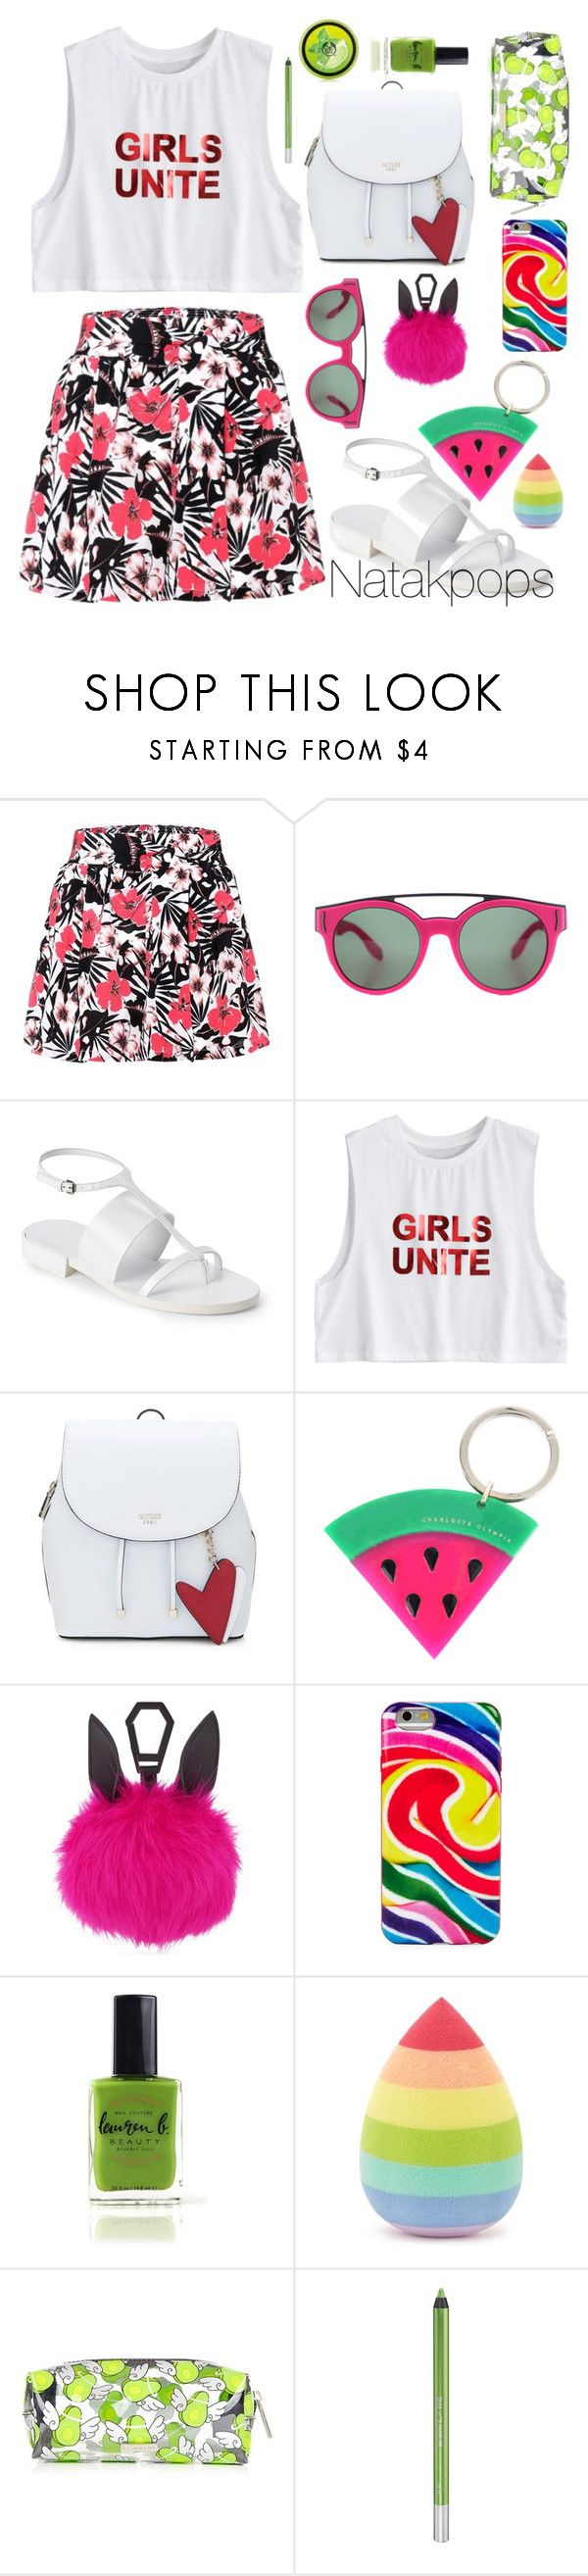 """Pretty girl"" by natakpops21 on Polyvore featuring moda, Etro, Givenchy, Jil Sander, Charlotte Olympia, Kendall + Kylie, Dylan's Candy Bar, Lauren B. Beauty, Forever 21 y Skinnydip"